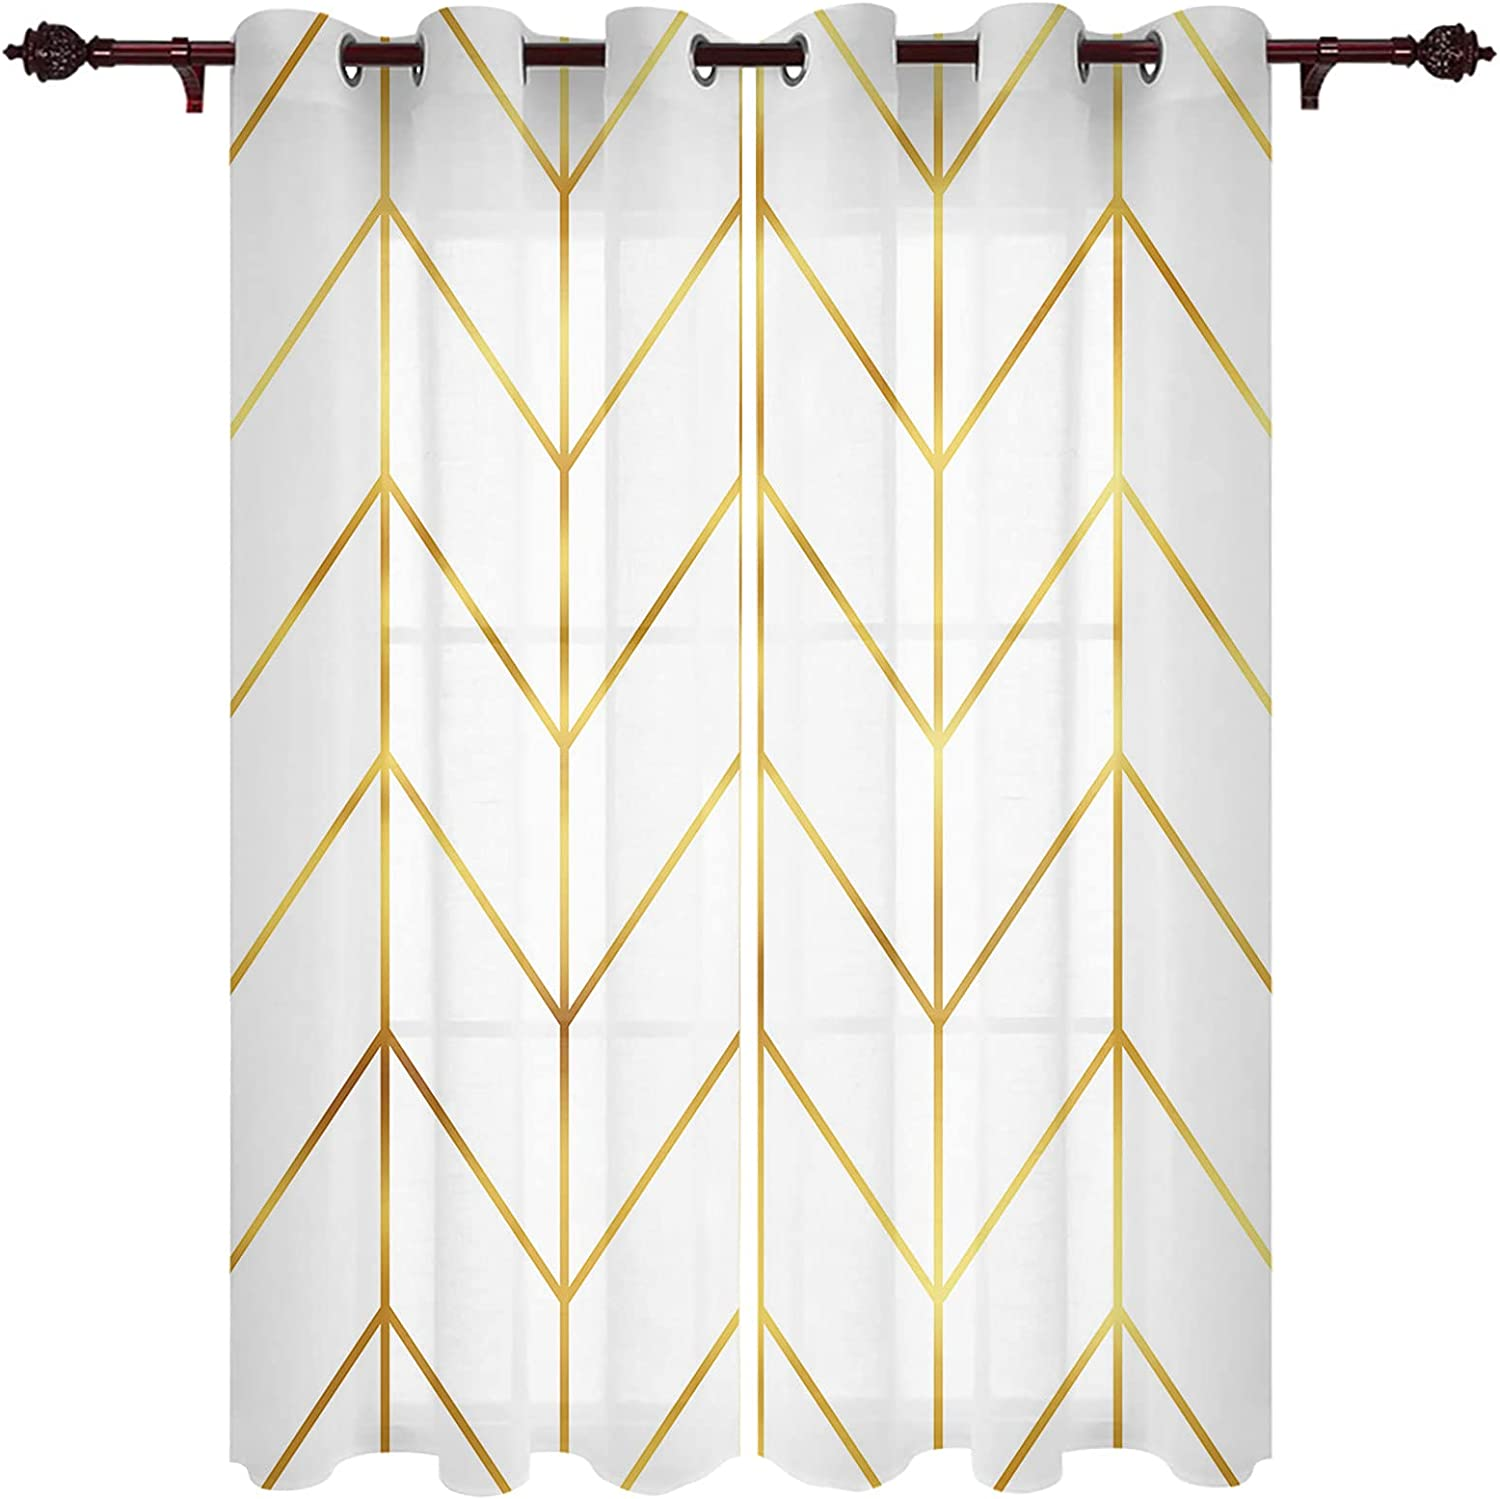 Semi Classic Sales for sale Sheer Curtain Window Treatment Living Panels for Ro